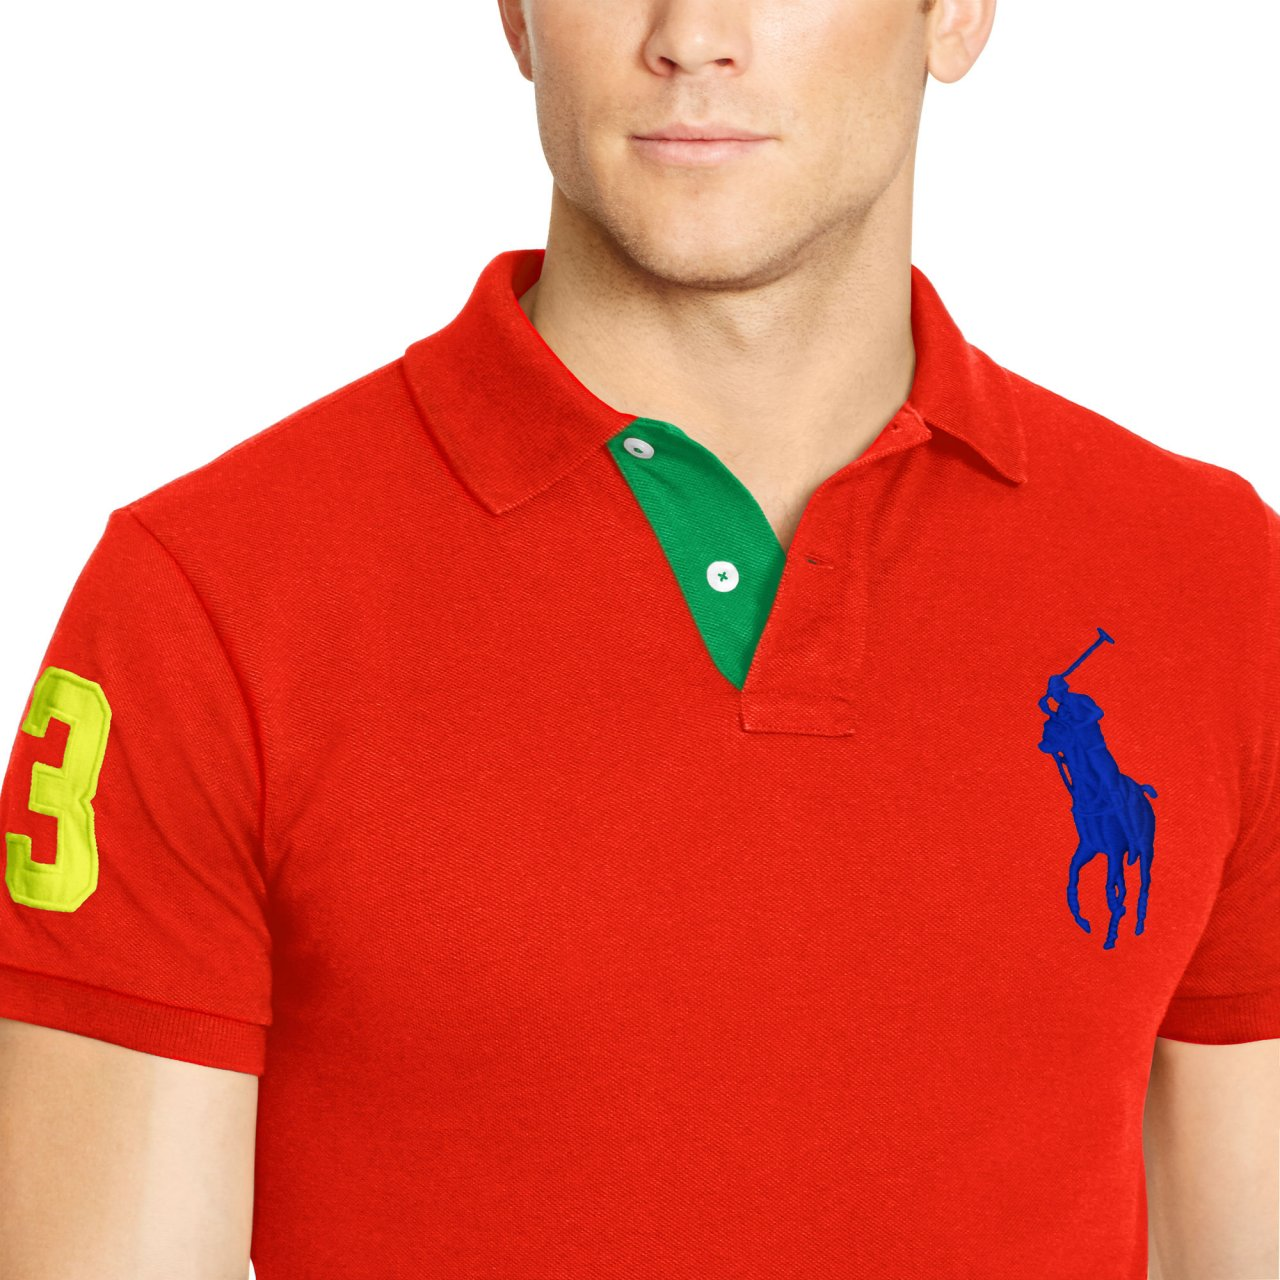 4c8c0f735 Polo Ralph Lauren NEW Custom Fit Big Pony Polo Cotton Short Sleeve Shirt  $98 | eBay